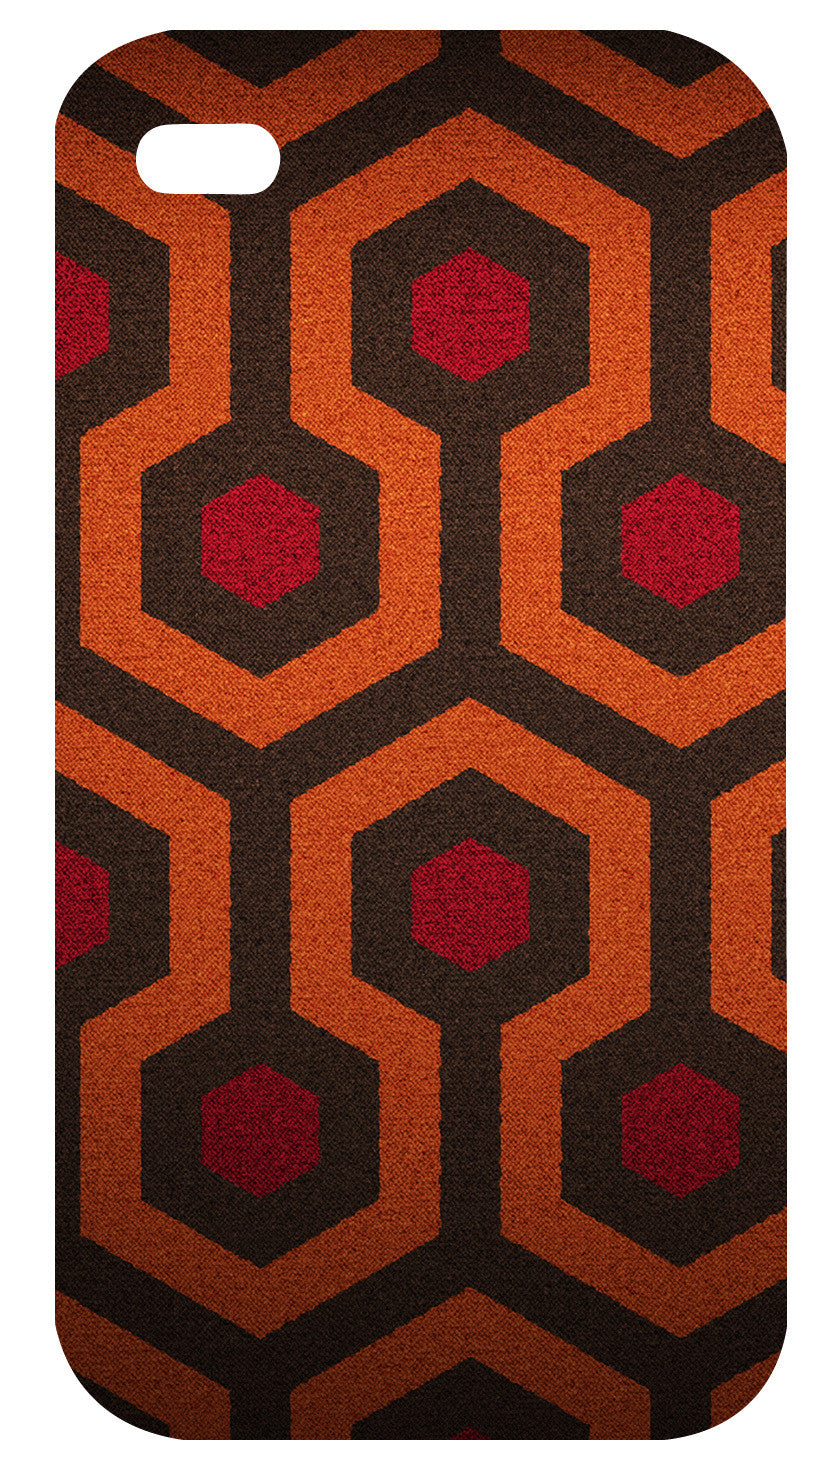 The Shining Overlook Hotel iPhone 4/4S Case